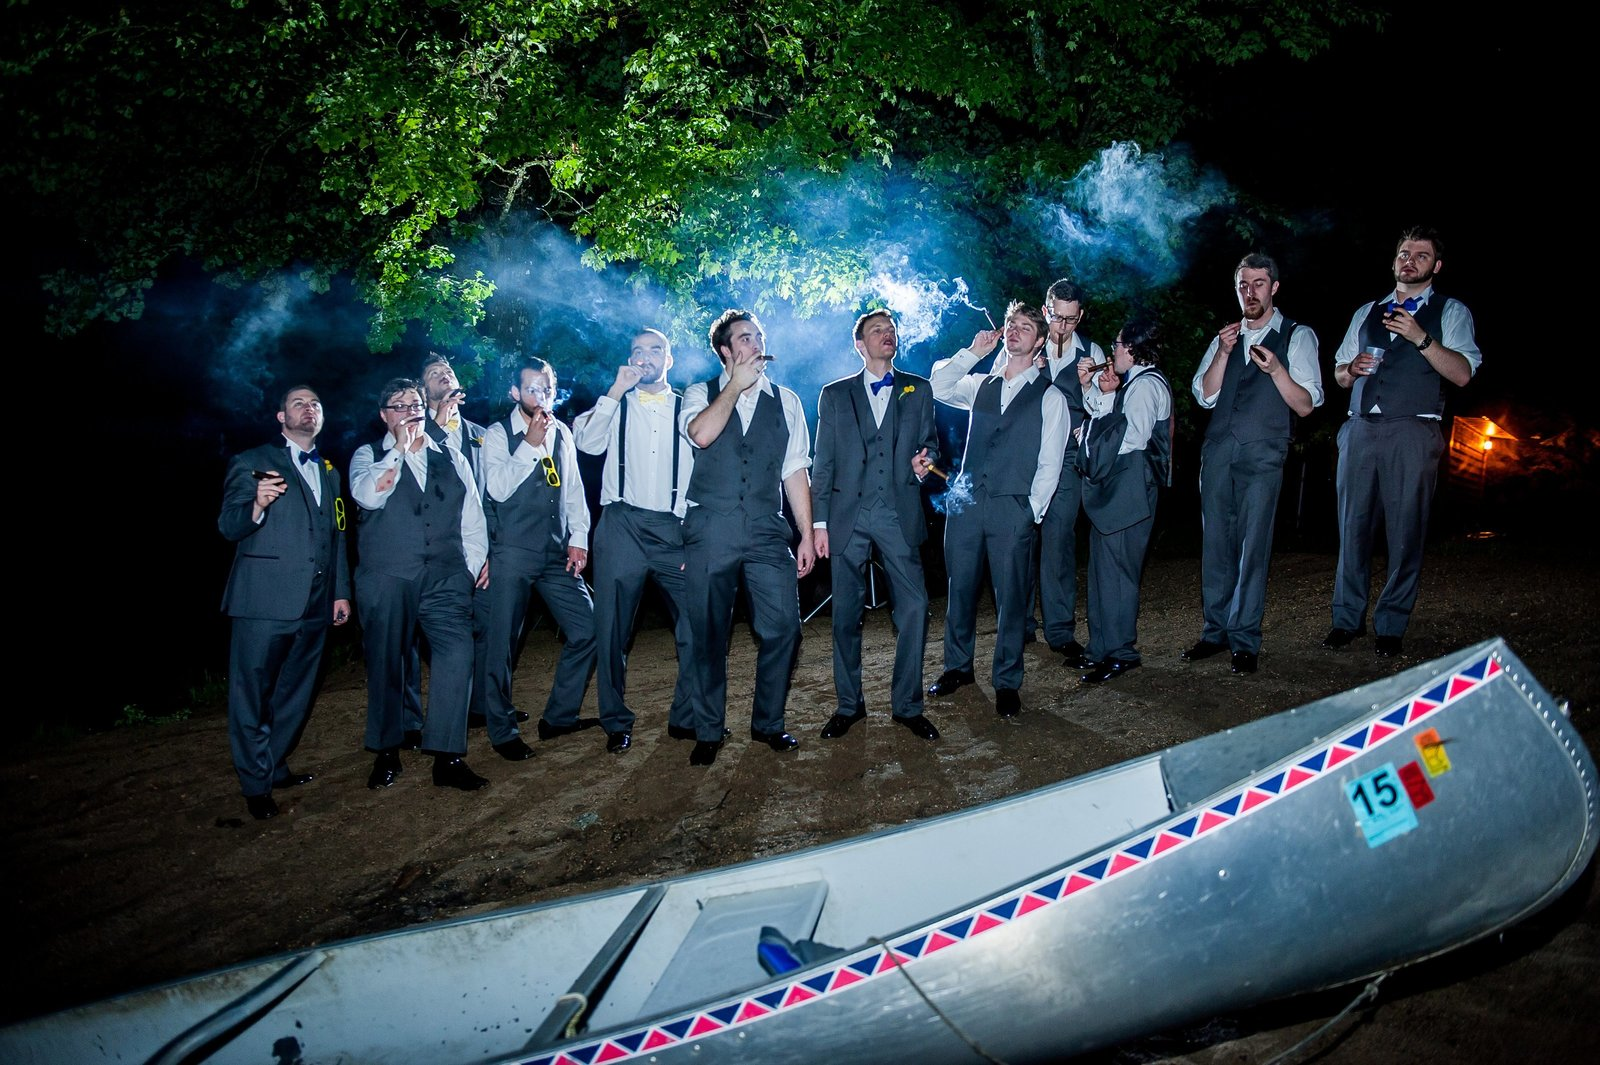 Dramatic groomsmen smoking cigars at night photographed by Kris Kandel